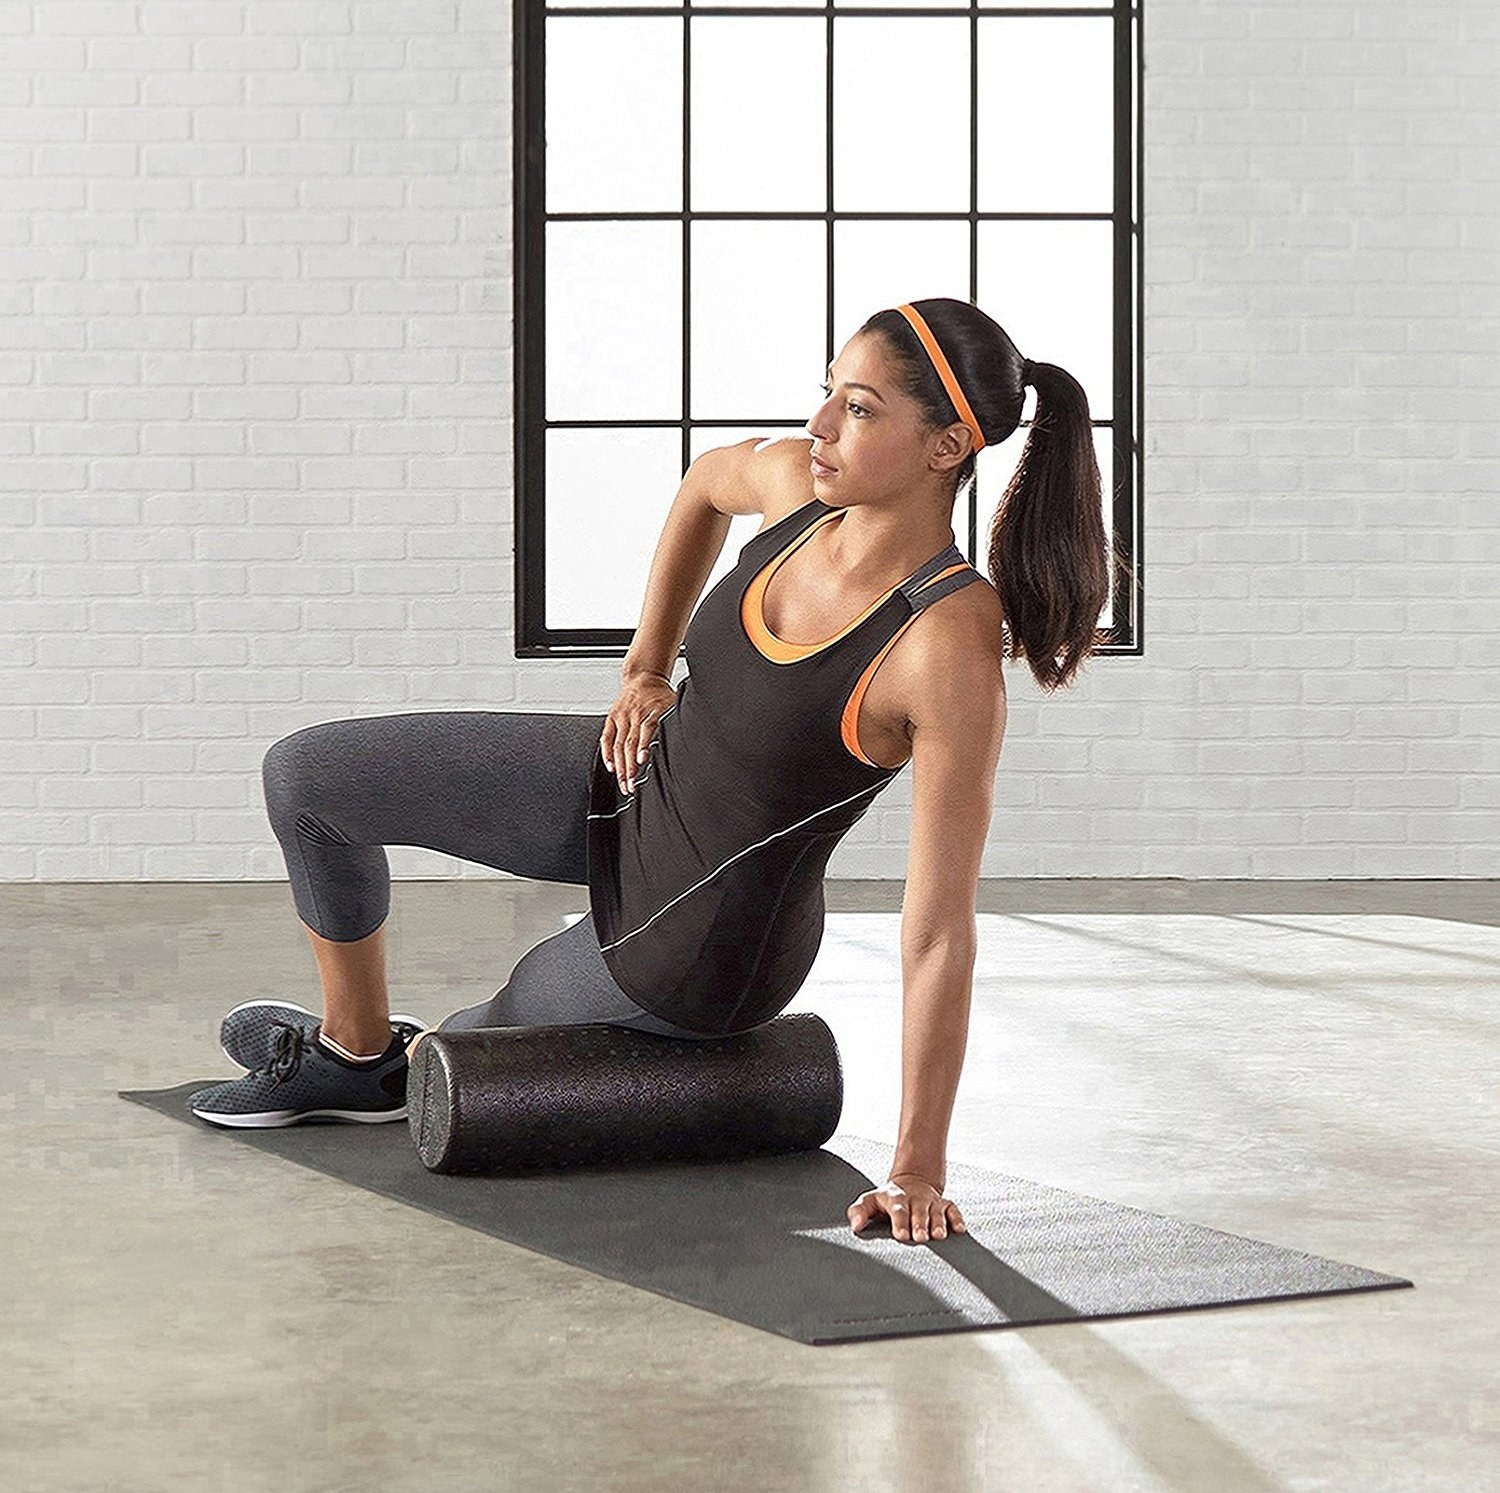 A model using a cylindrical foam roller on their thigh